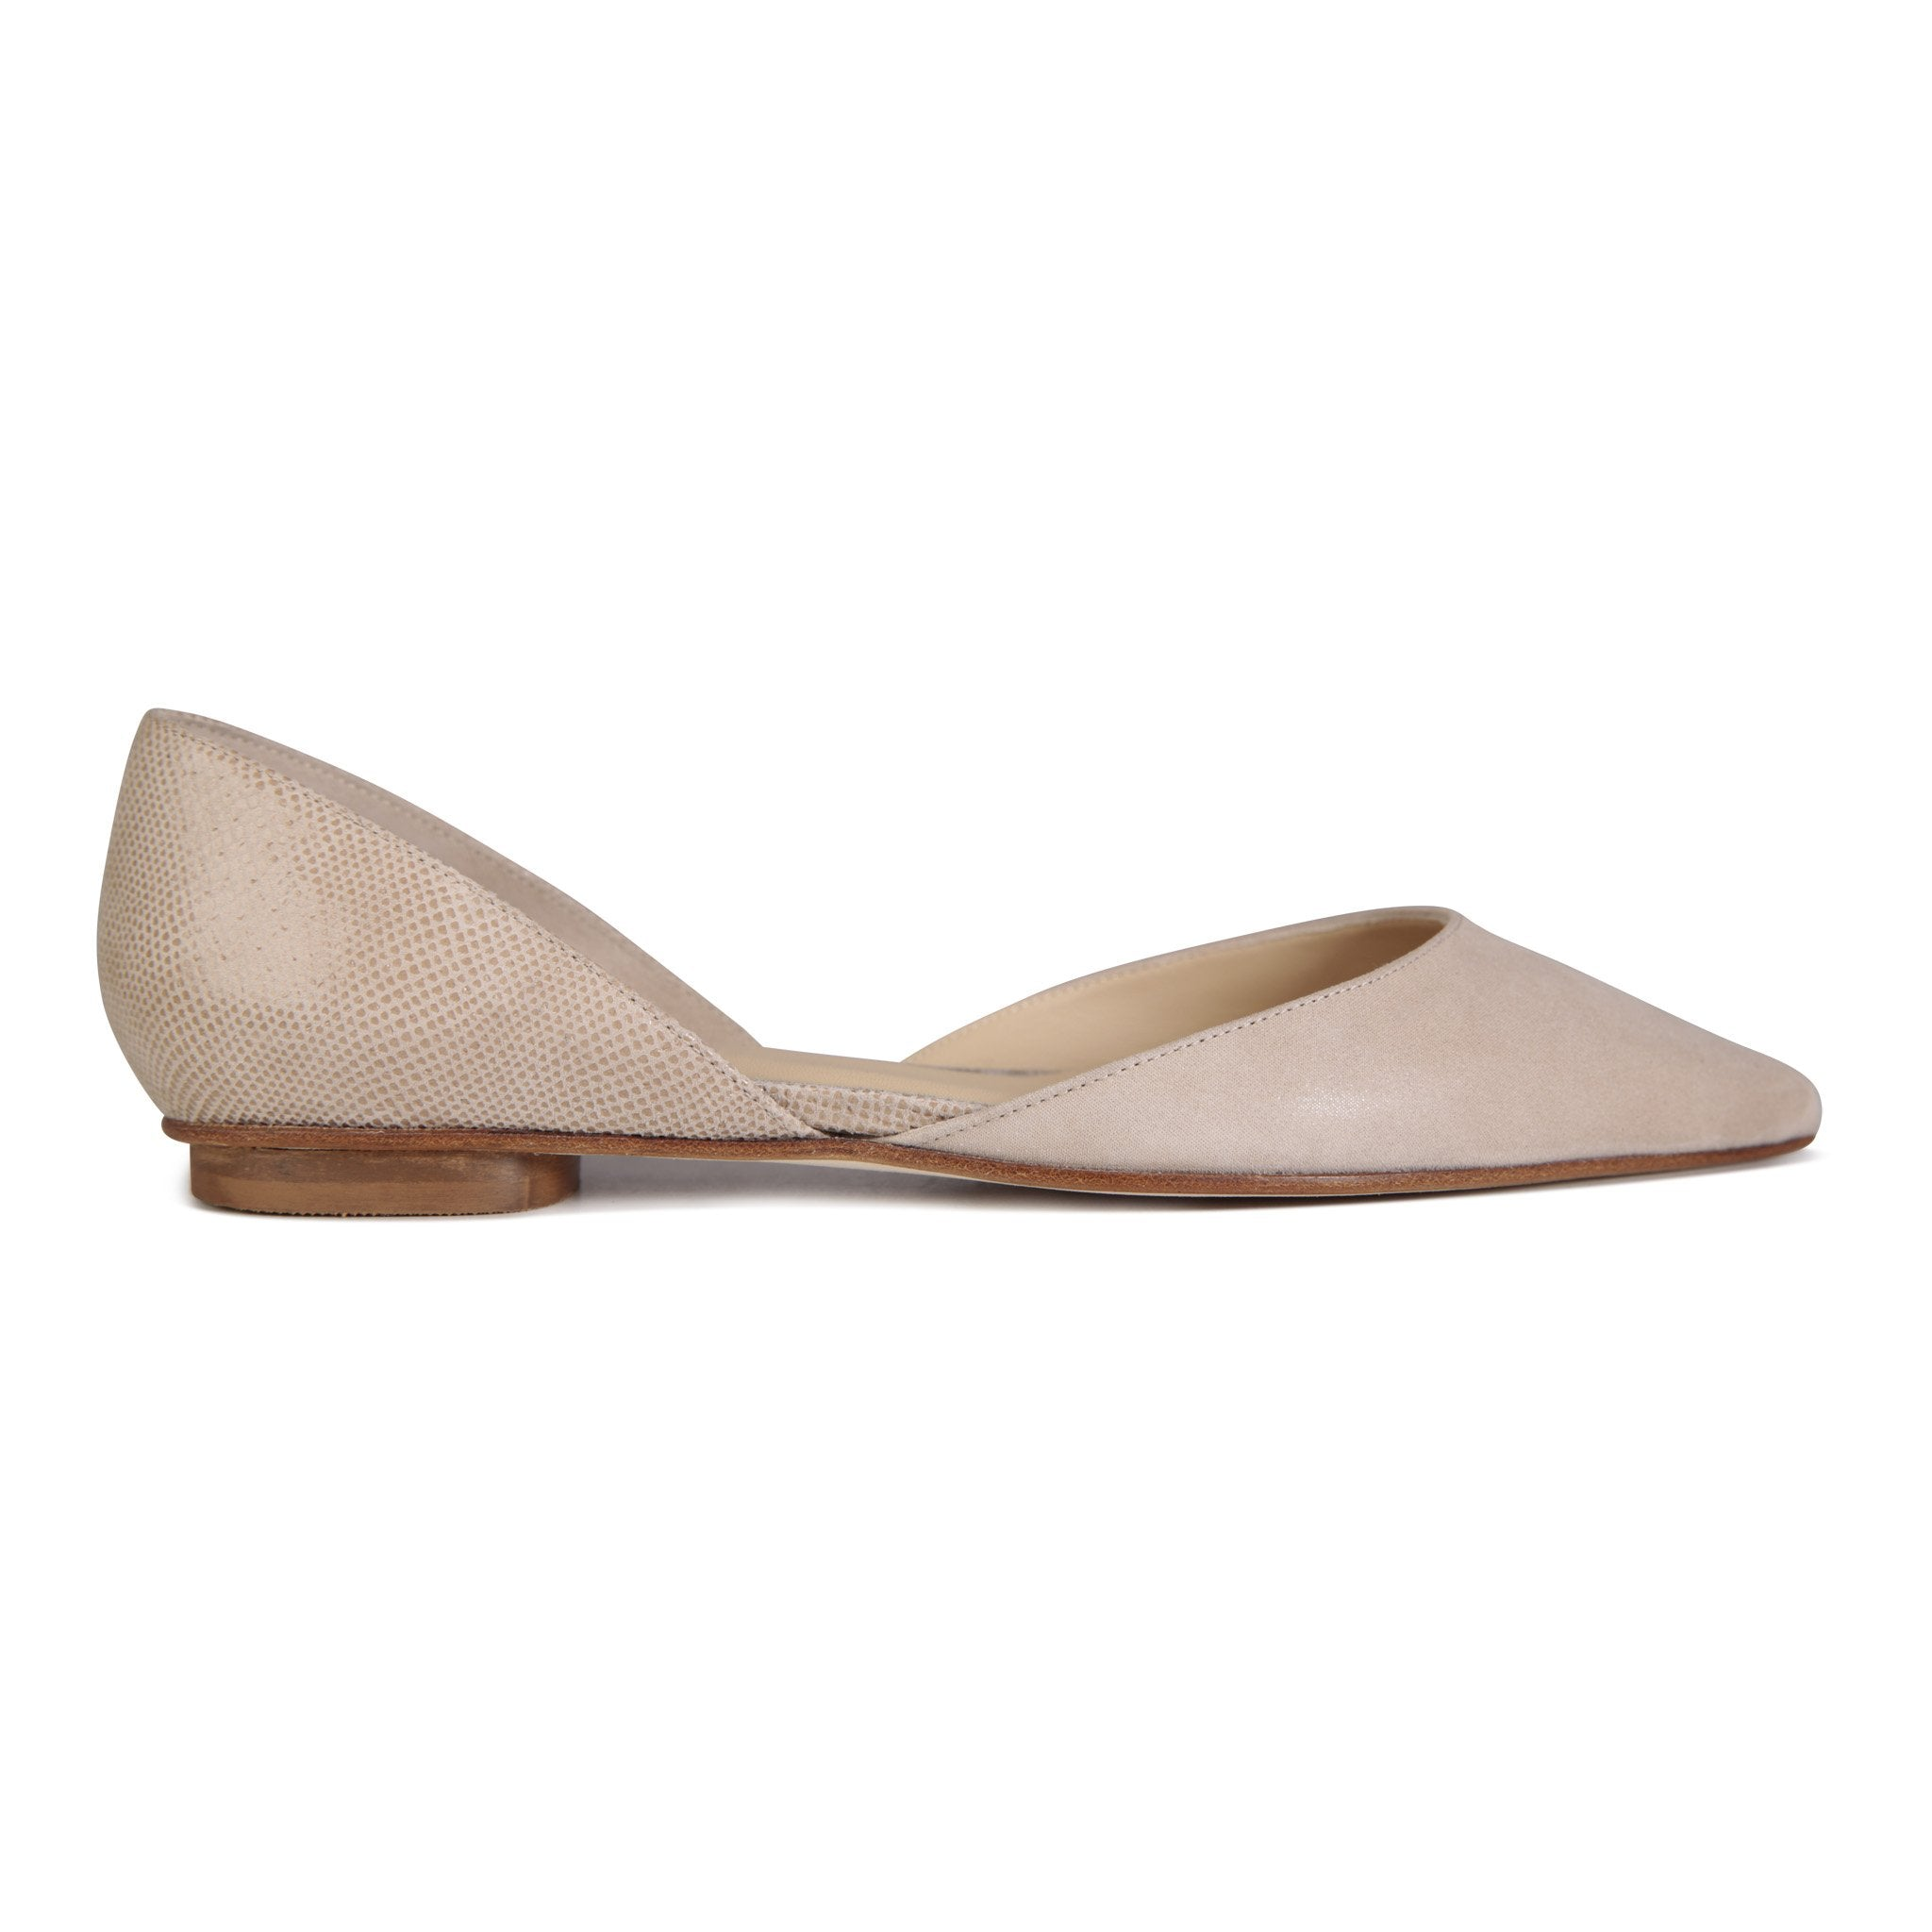 PONZA - Hydra Tan + Karung, VIAJIYU - Women's Hand Made Sustainable Luxury Shoes. Made in Italy. Made to Order.